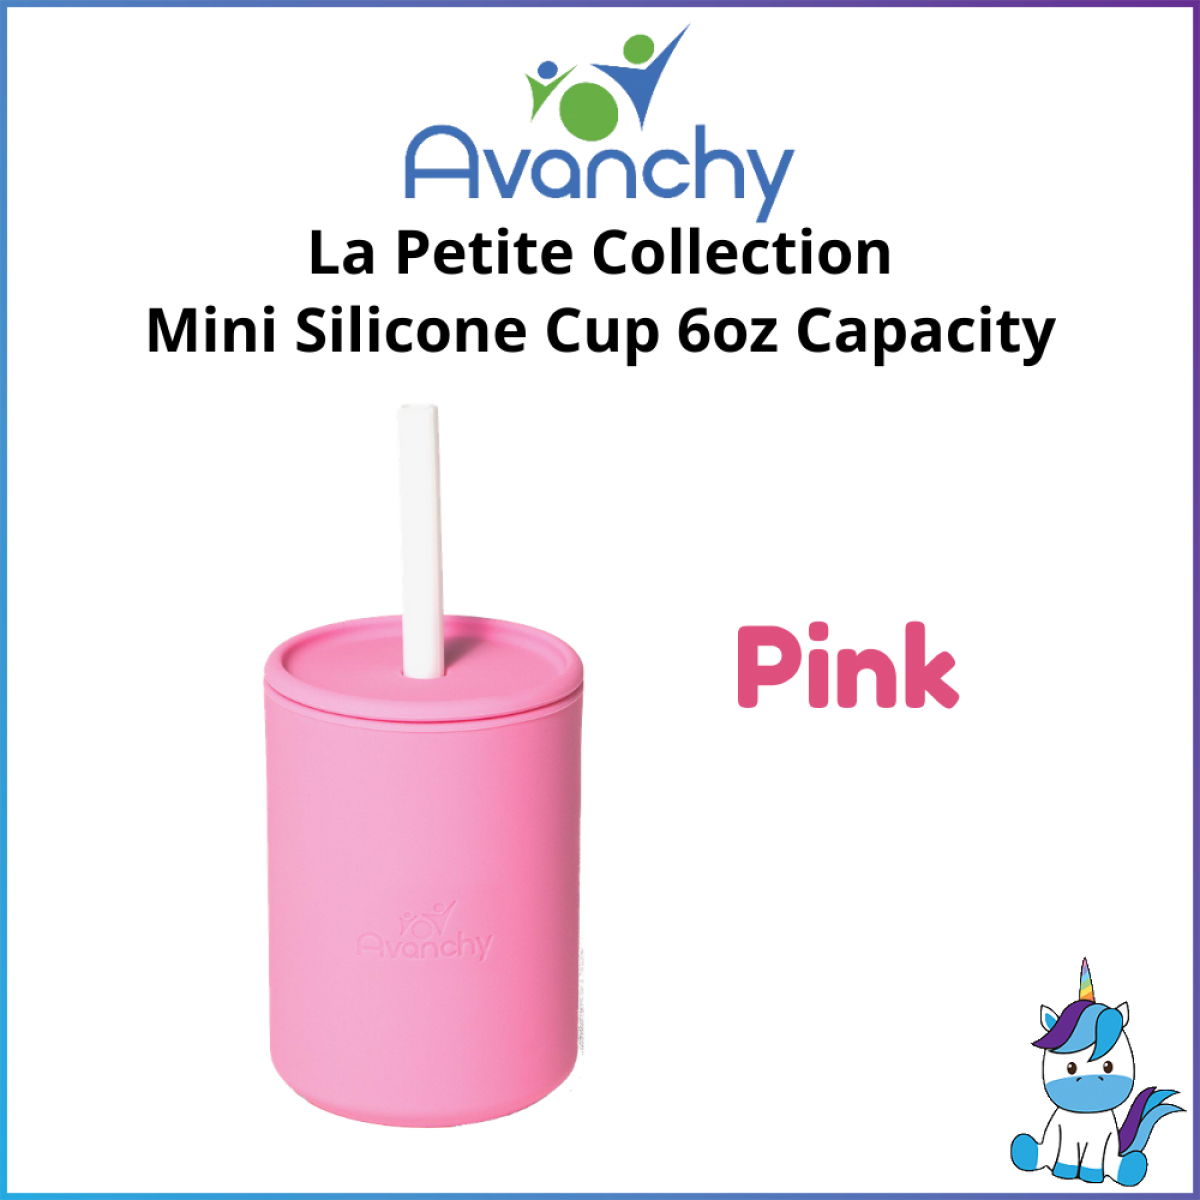 Avanchy La Petite Collection Mini Silicone Baby Cup 6oz - Baby Straw Cup - 6 Months and Above